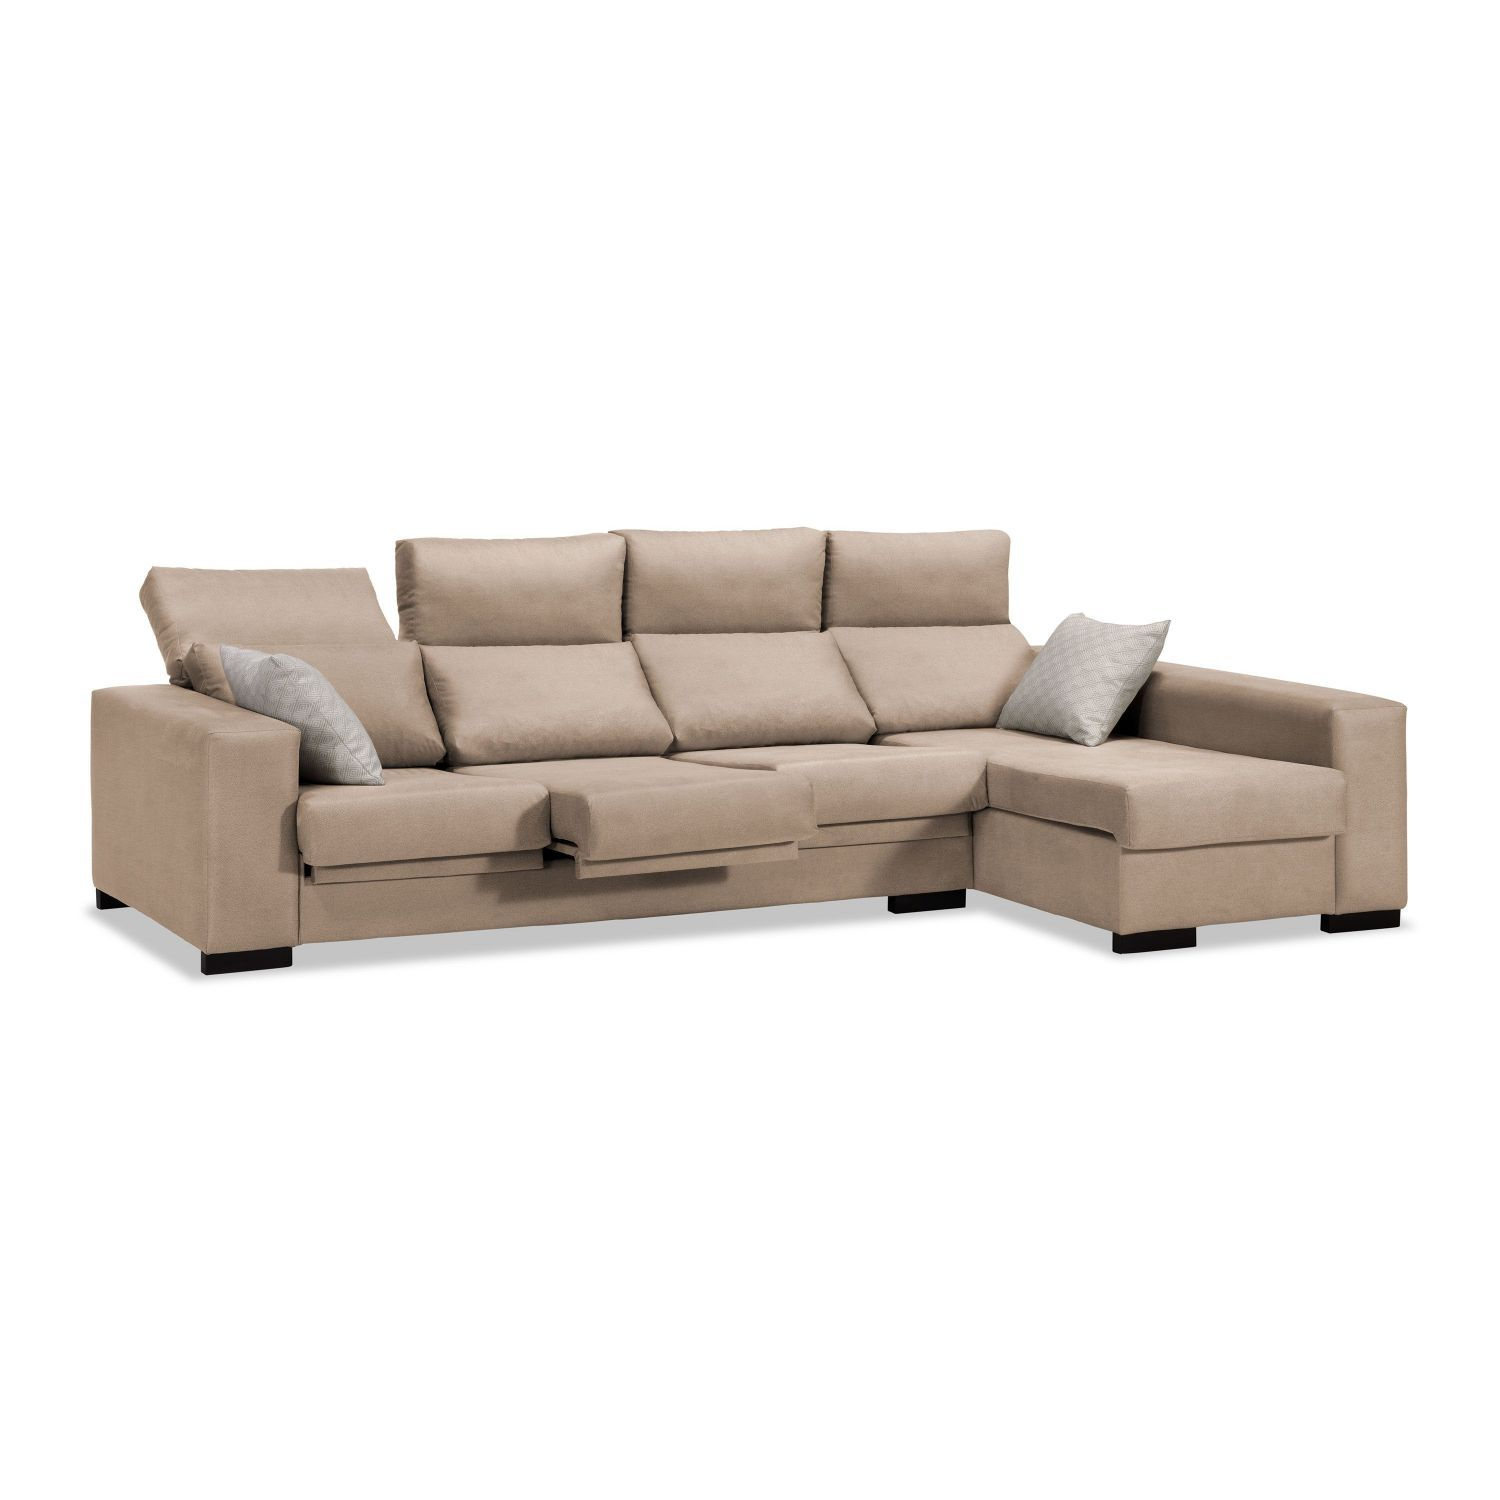 Sofá chaise longue beige reclinable extensible 270 cm.